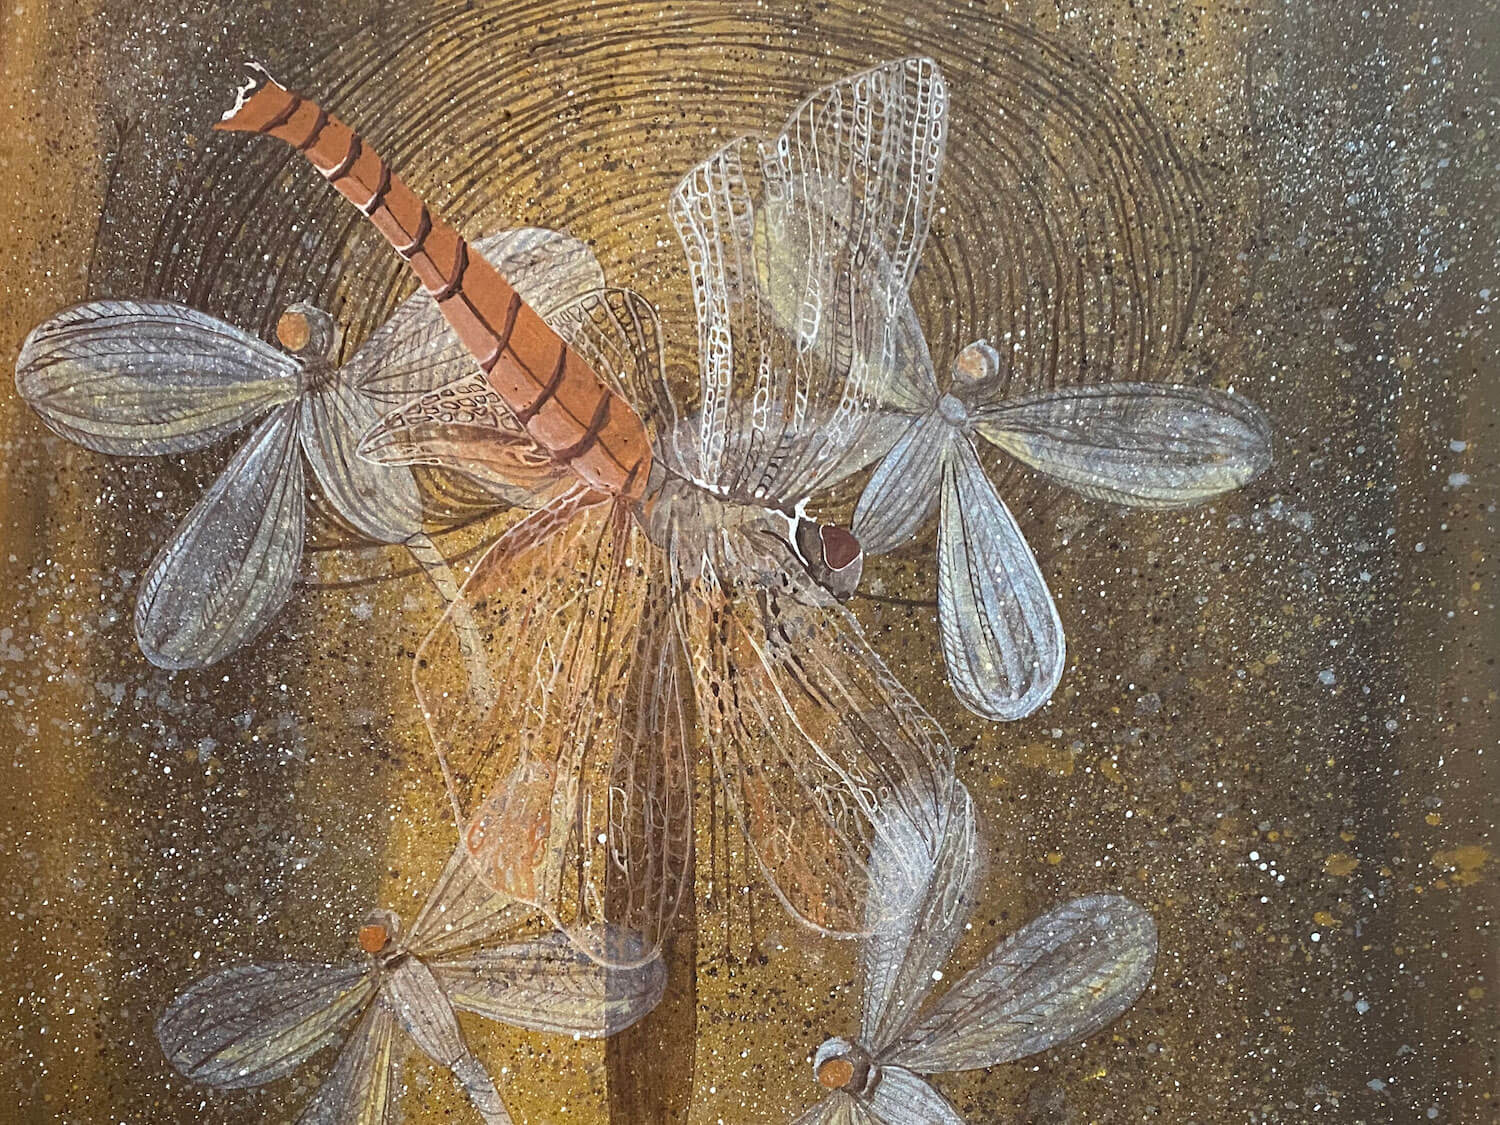 Leah Umbagai, Didnyjinygee (Dragonfly) (detail), 2020, acrylic and ochre on canvas, 90 x 90cm. Image courtesy of Mowanjum Arts